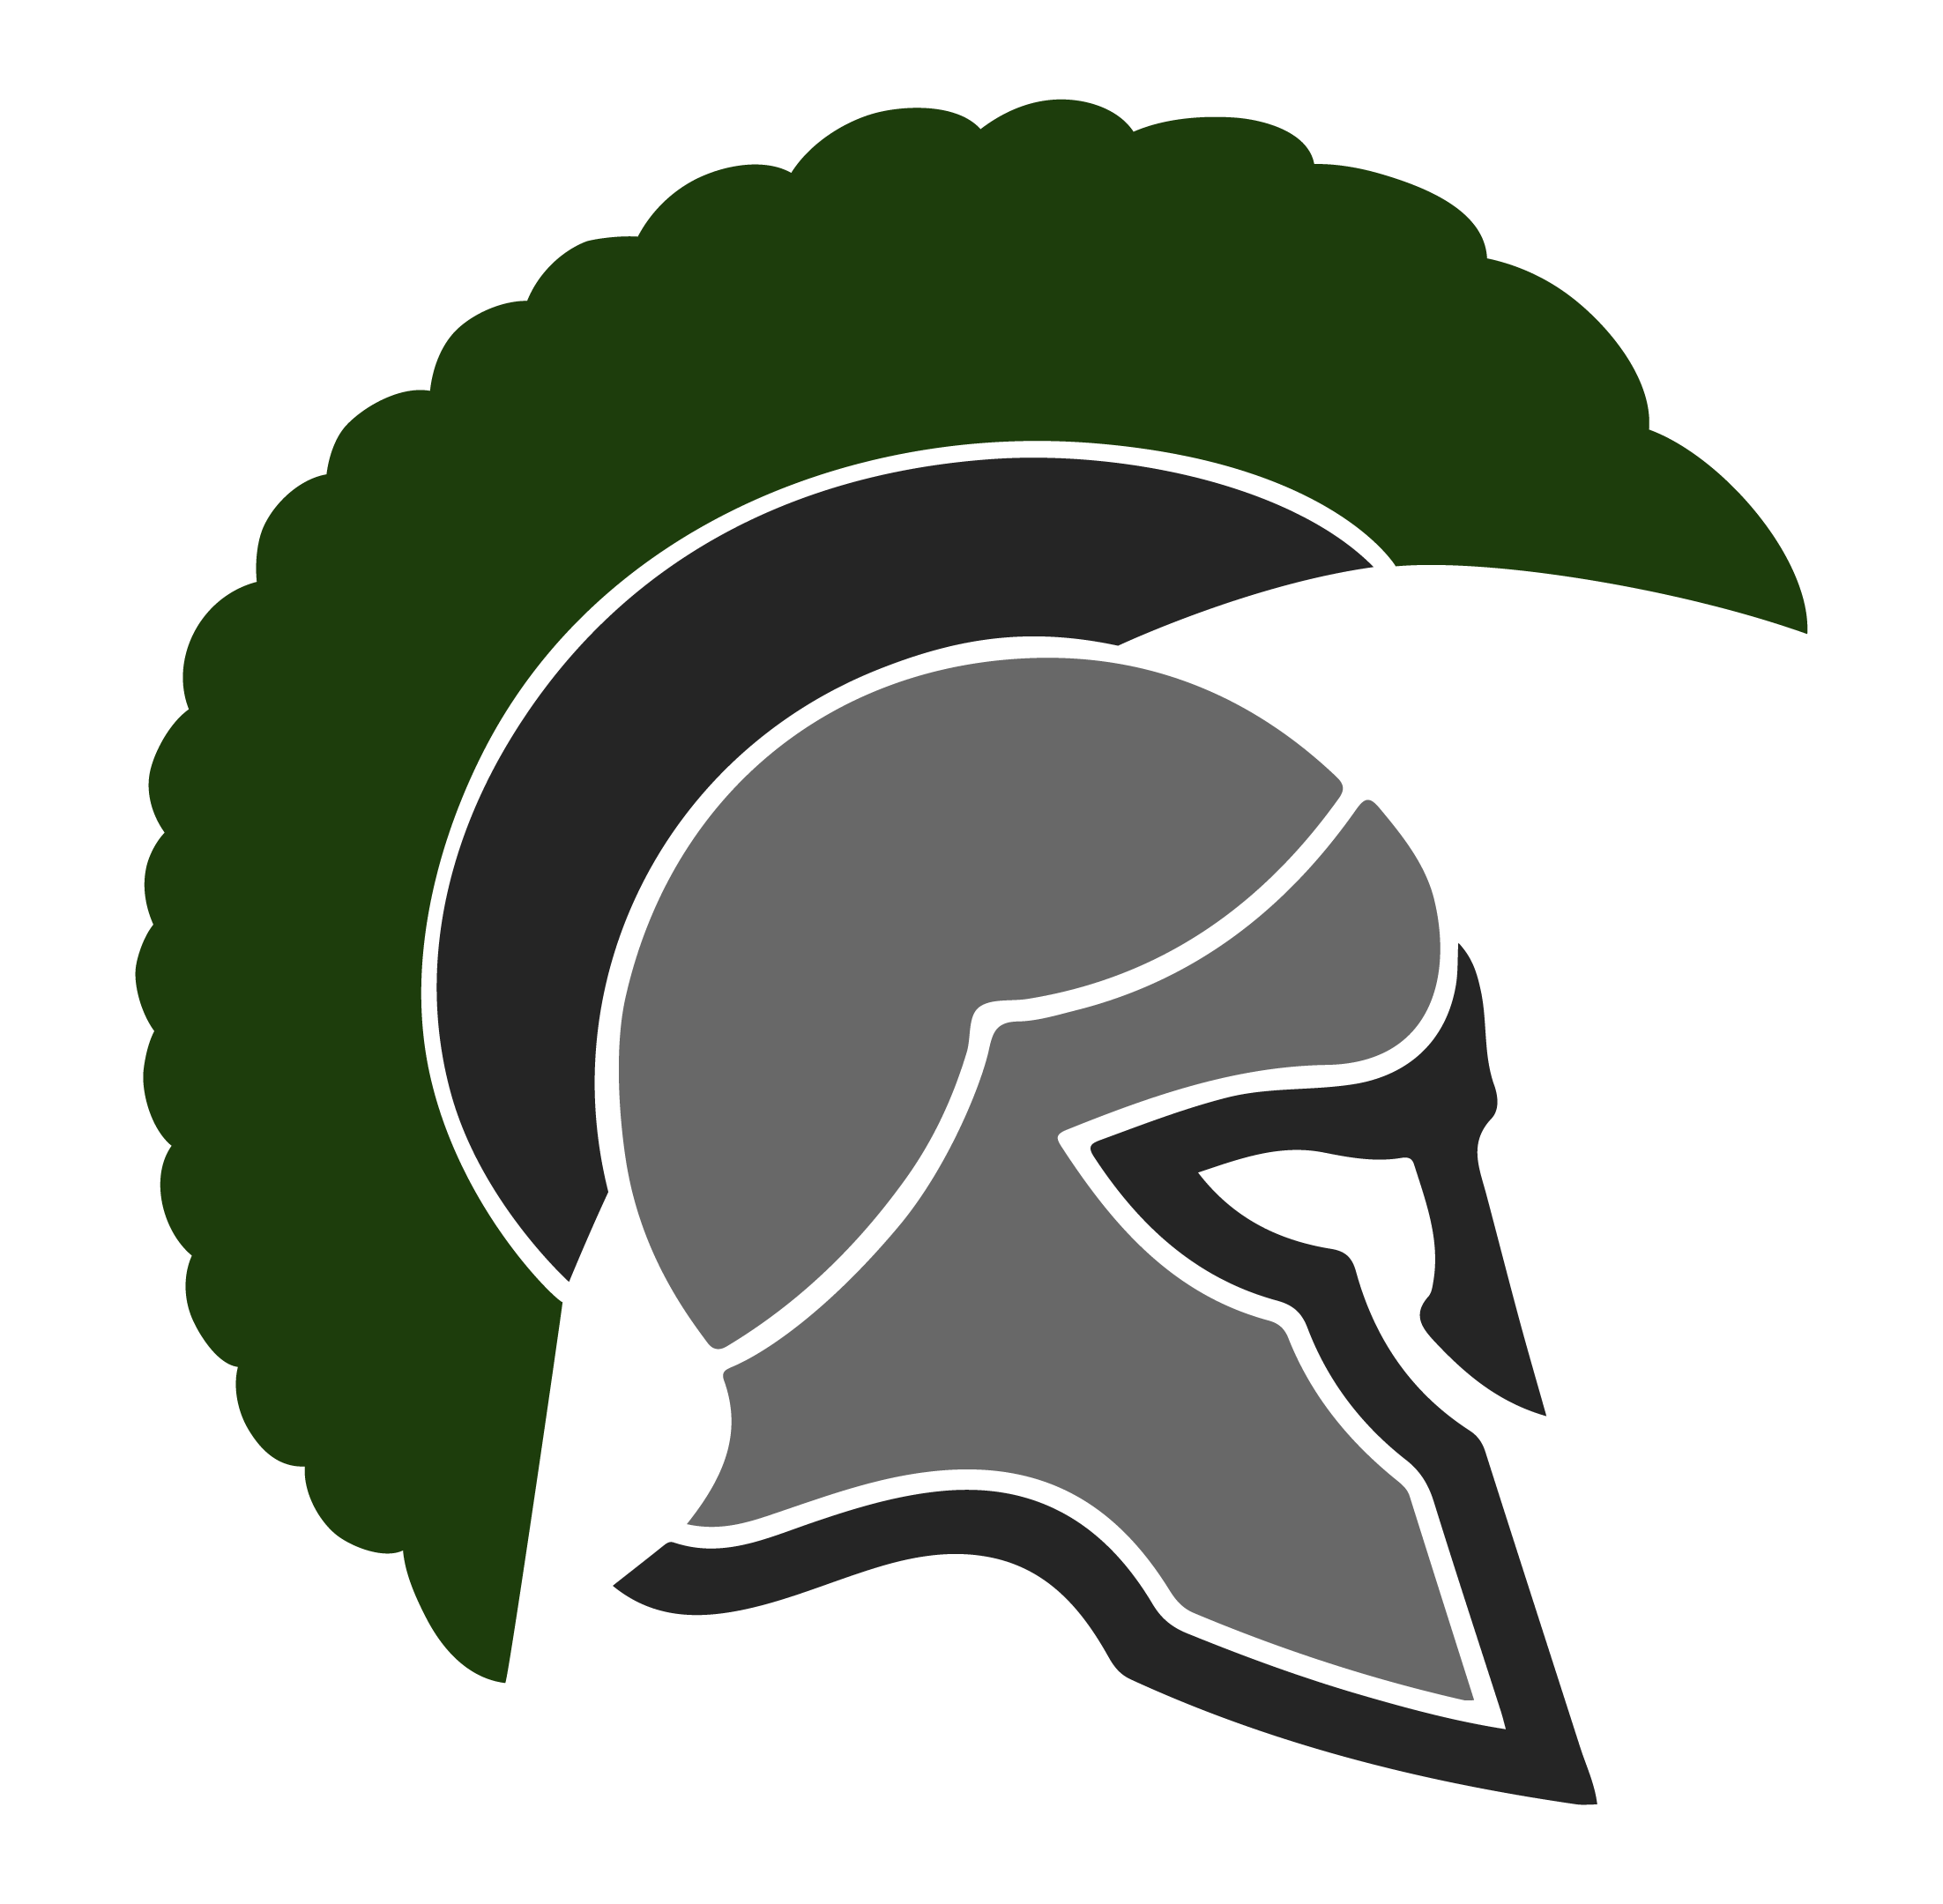 East lycoming school district. Spartan clipart government